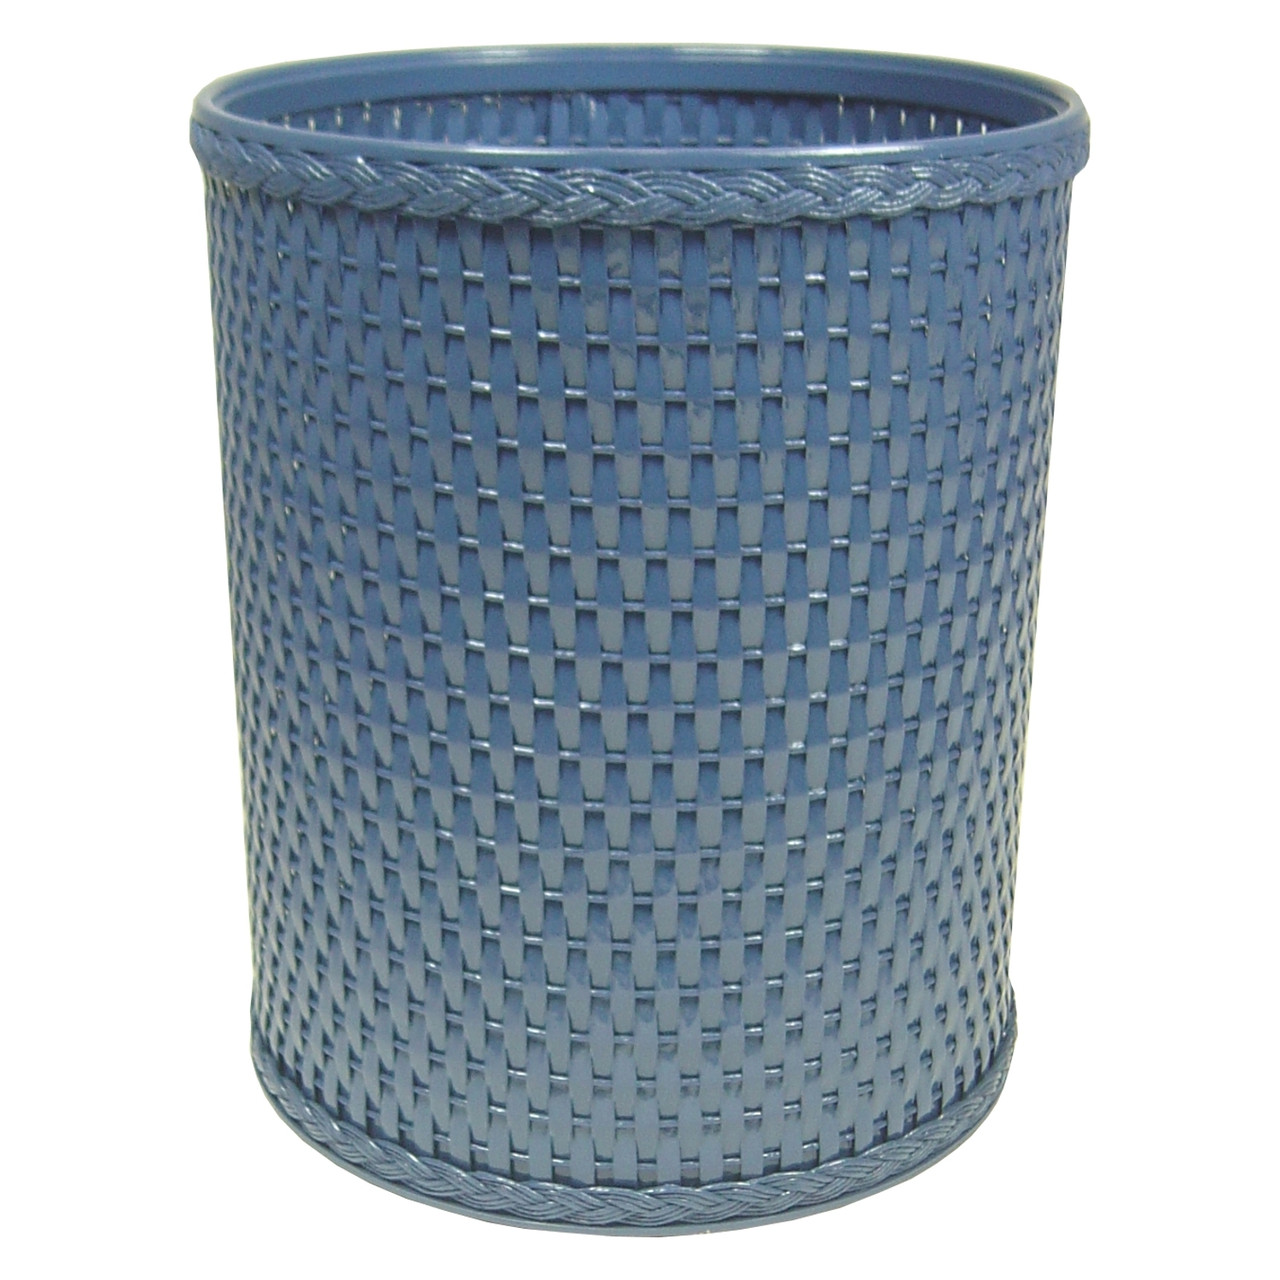 Chelsea Wicker Round Wastebasket Coastal Blue